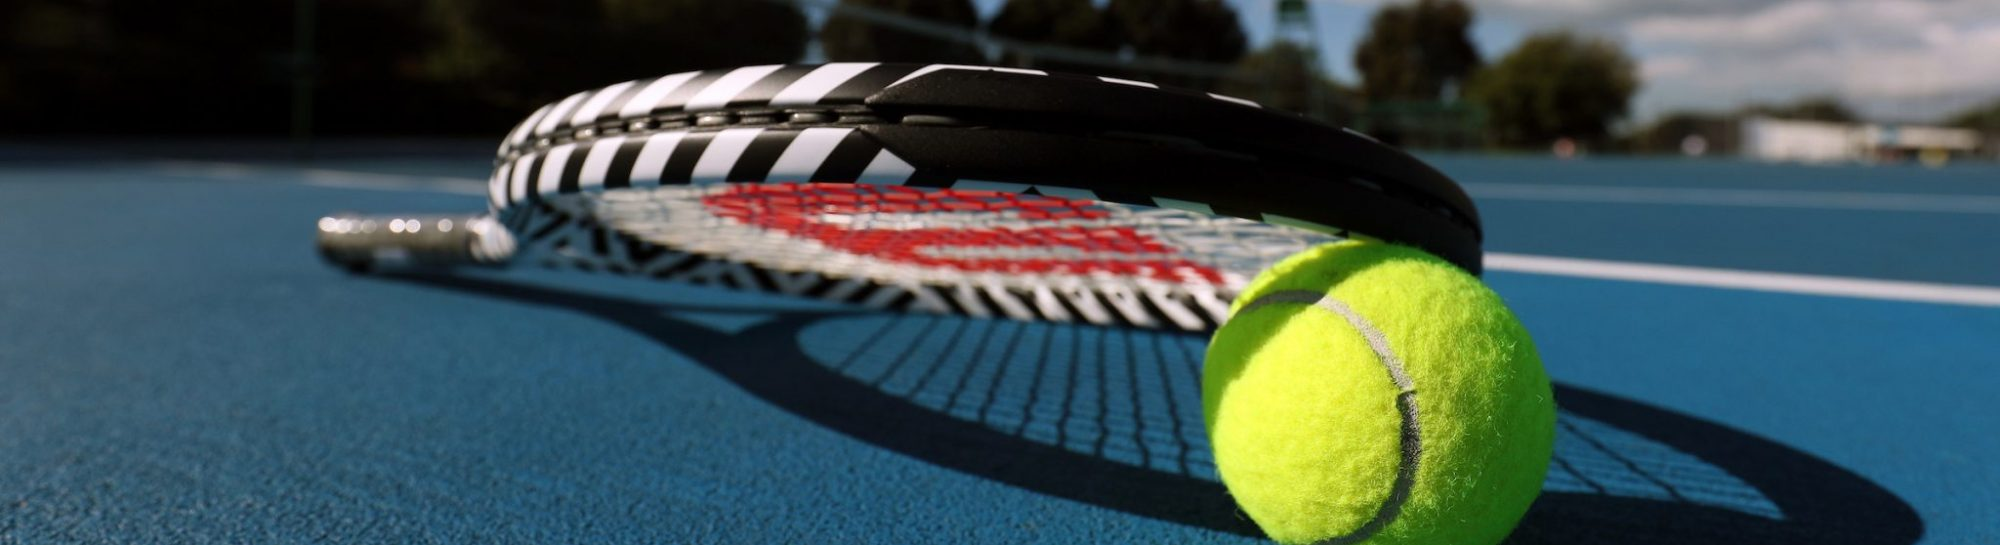 Adult Coaching Tennis Auckland